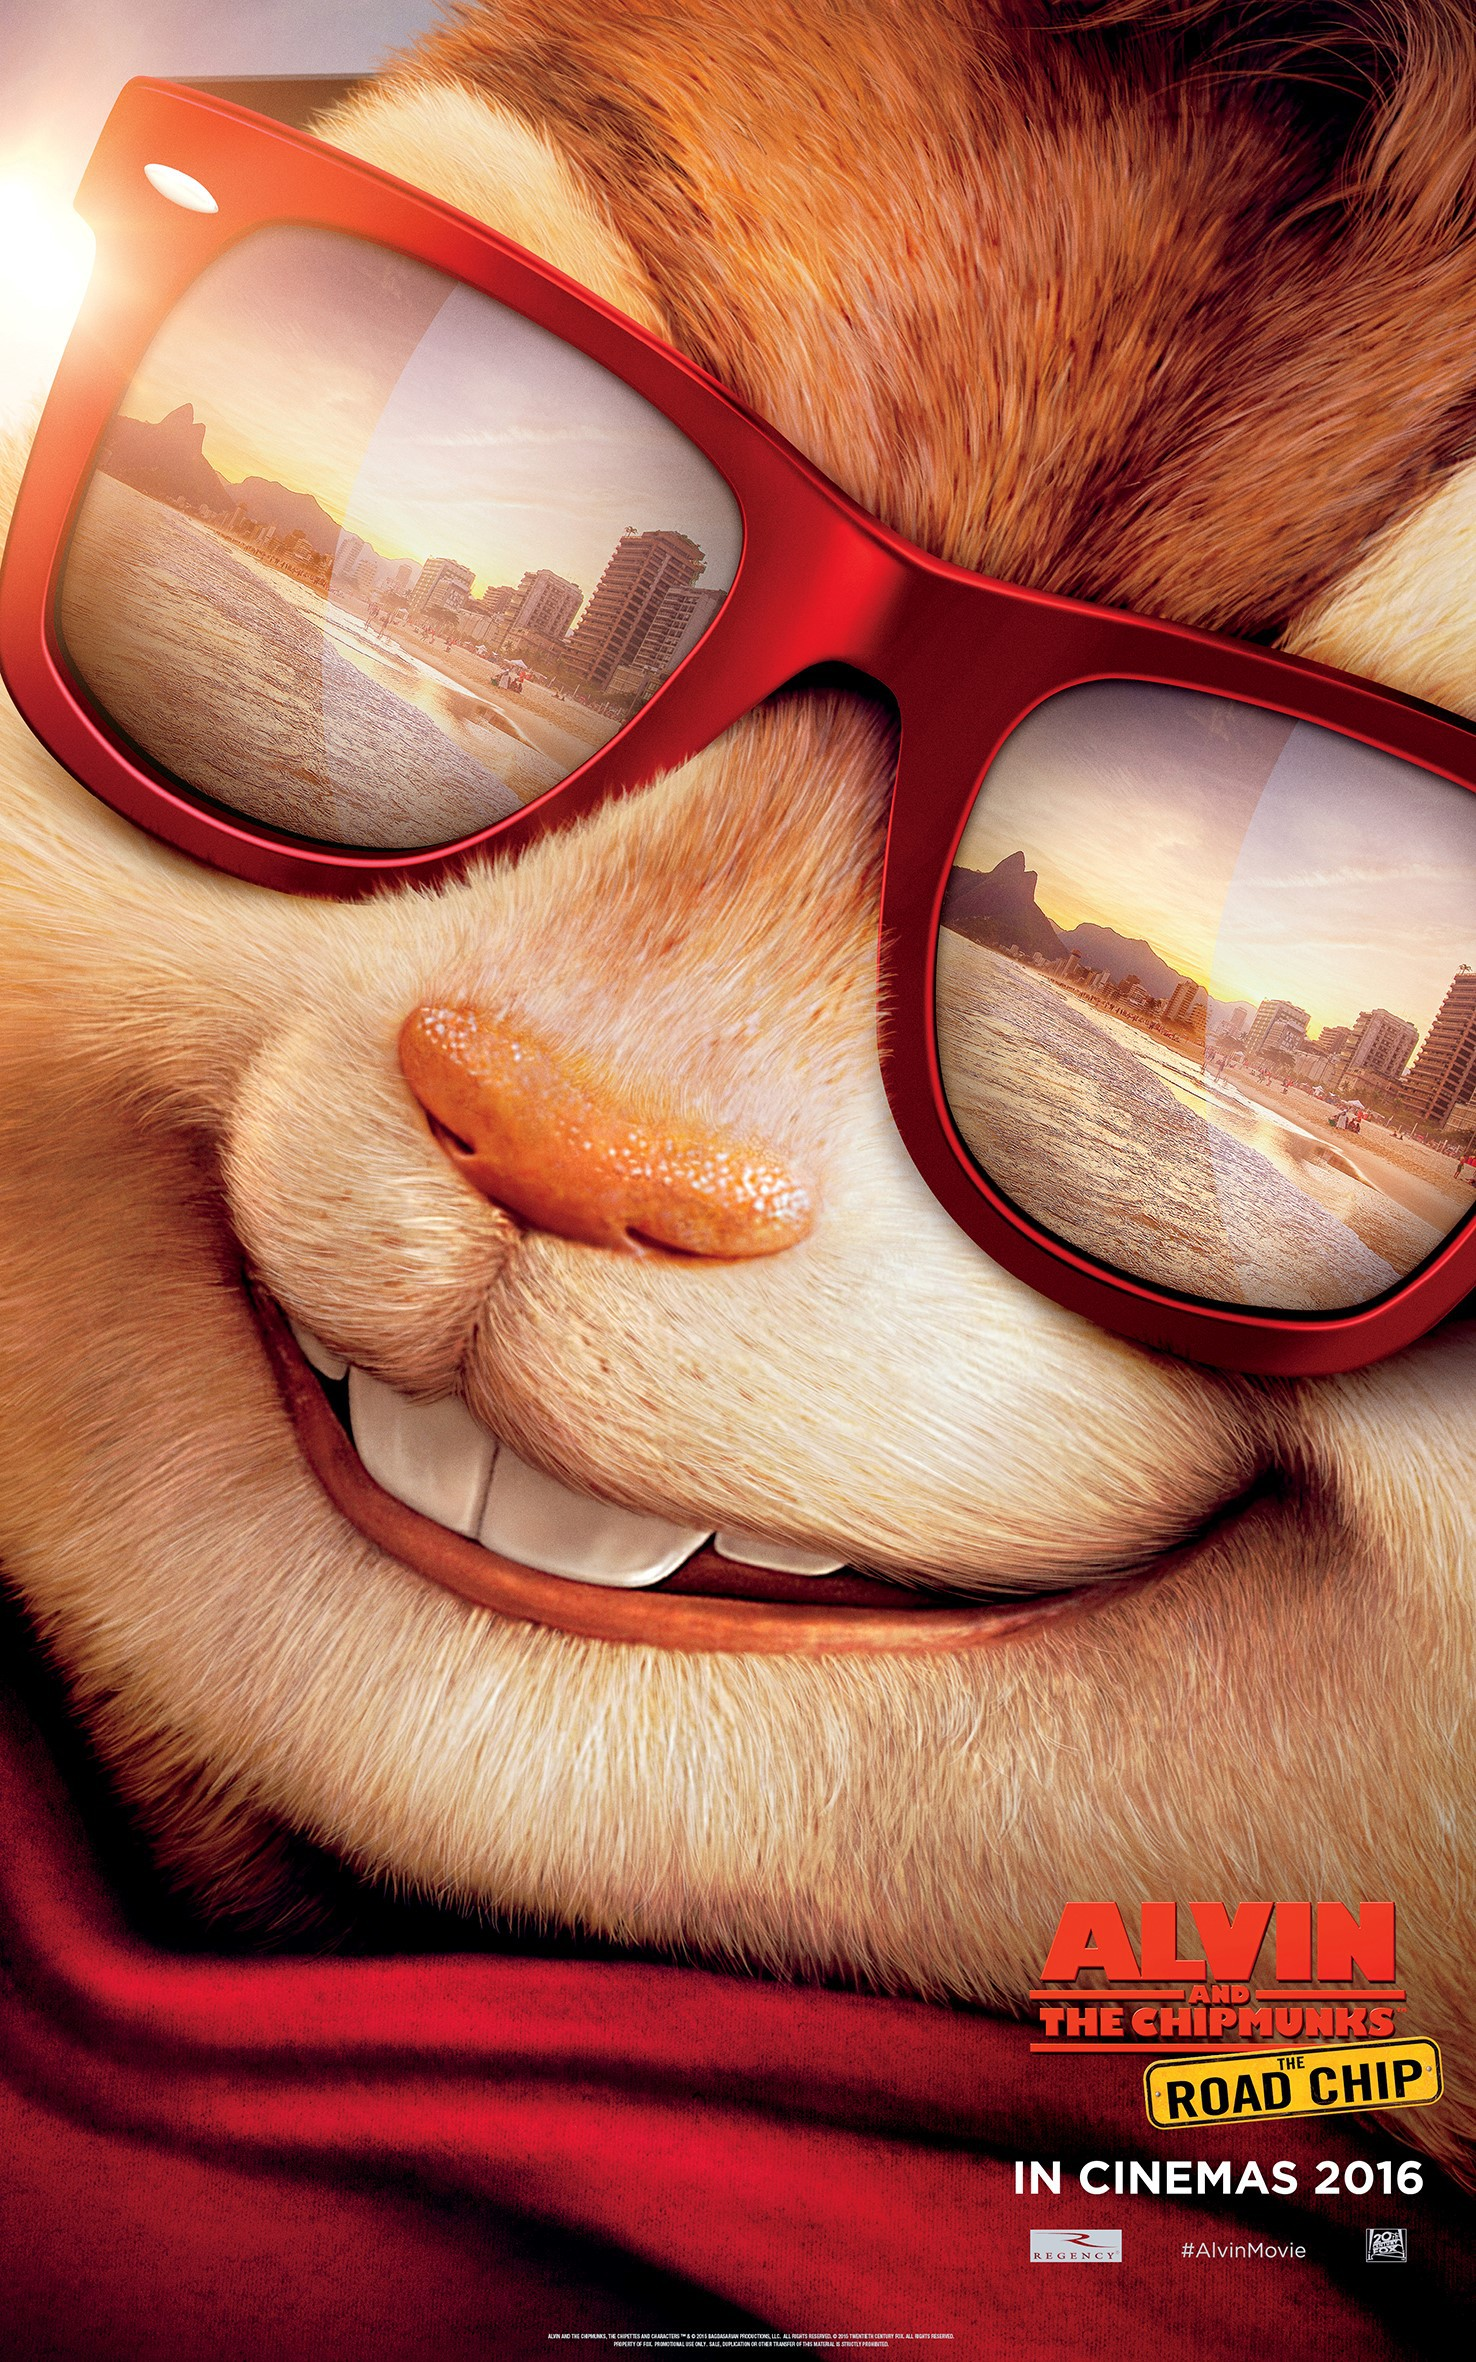 Alvin and the Chipmunks The Road Chip-24Setembro2015 (4)